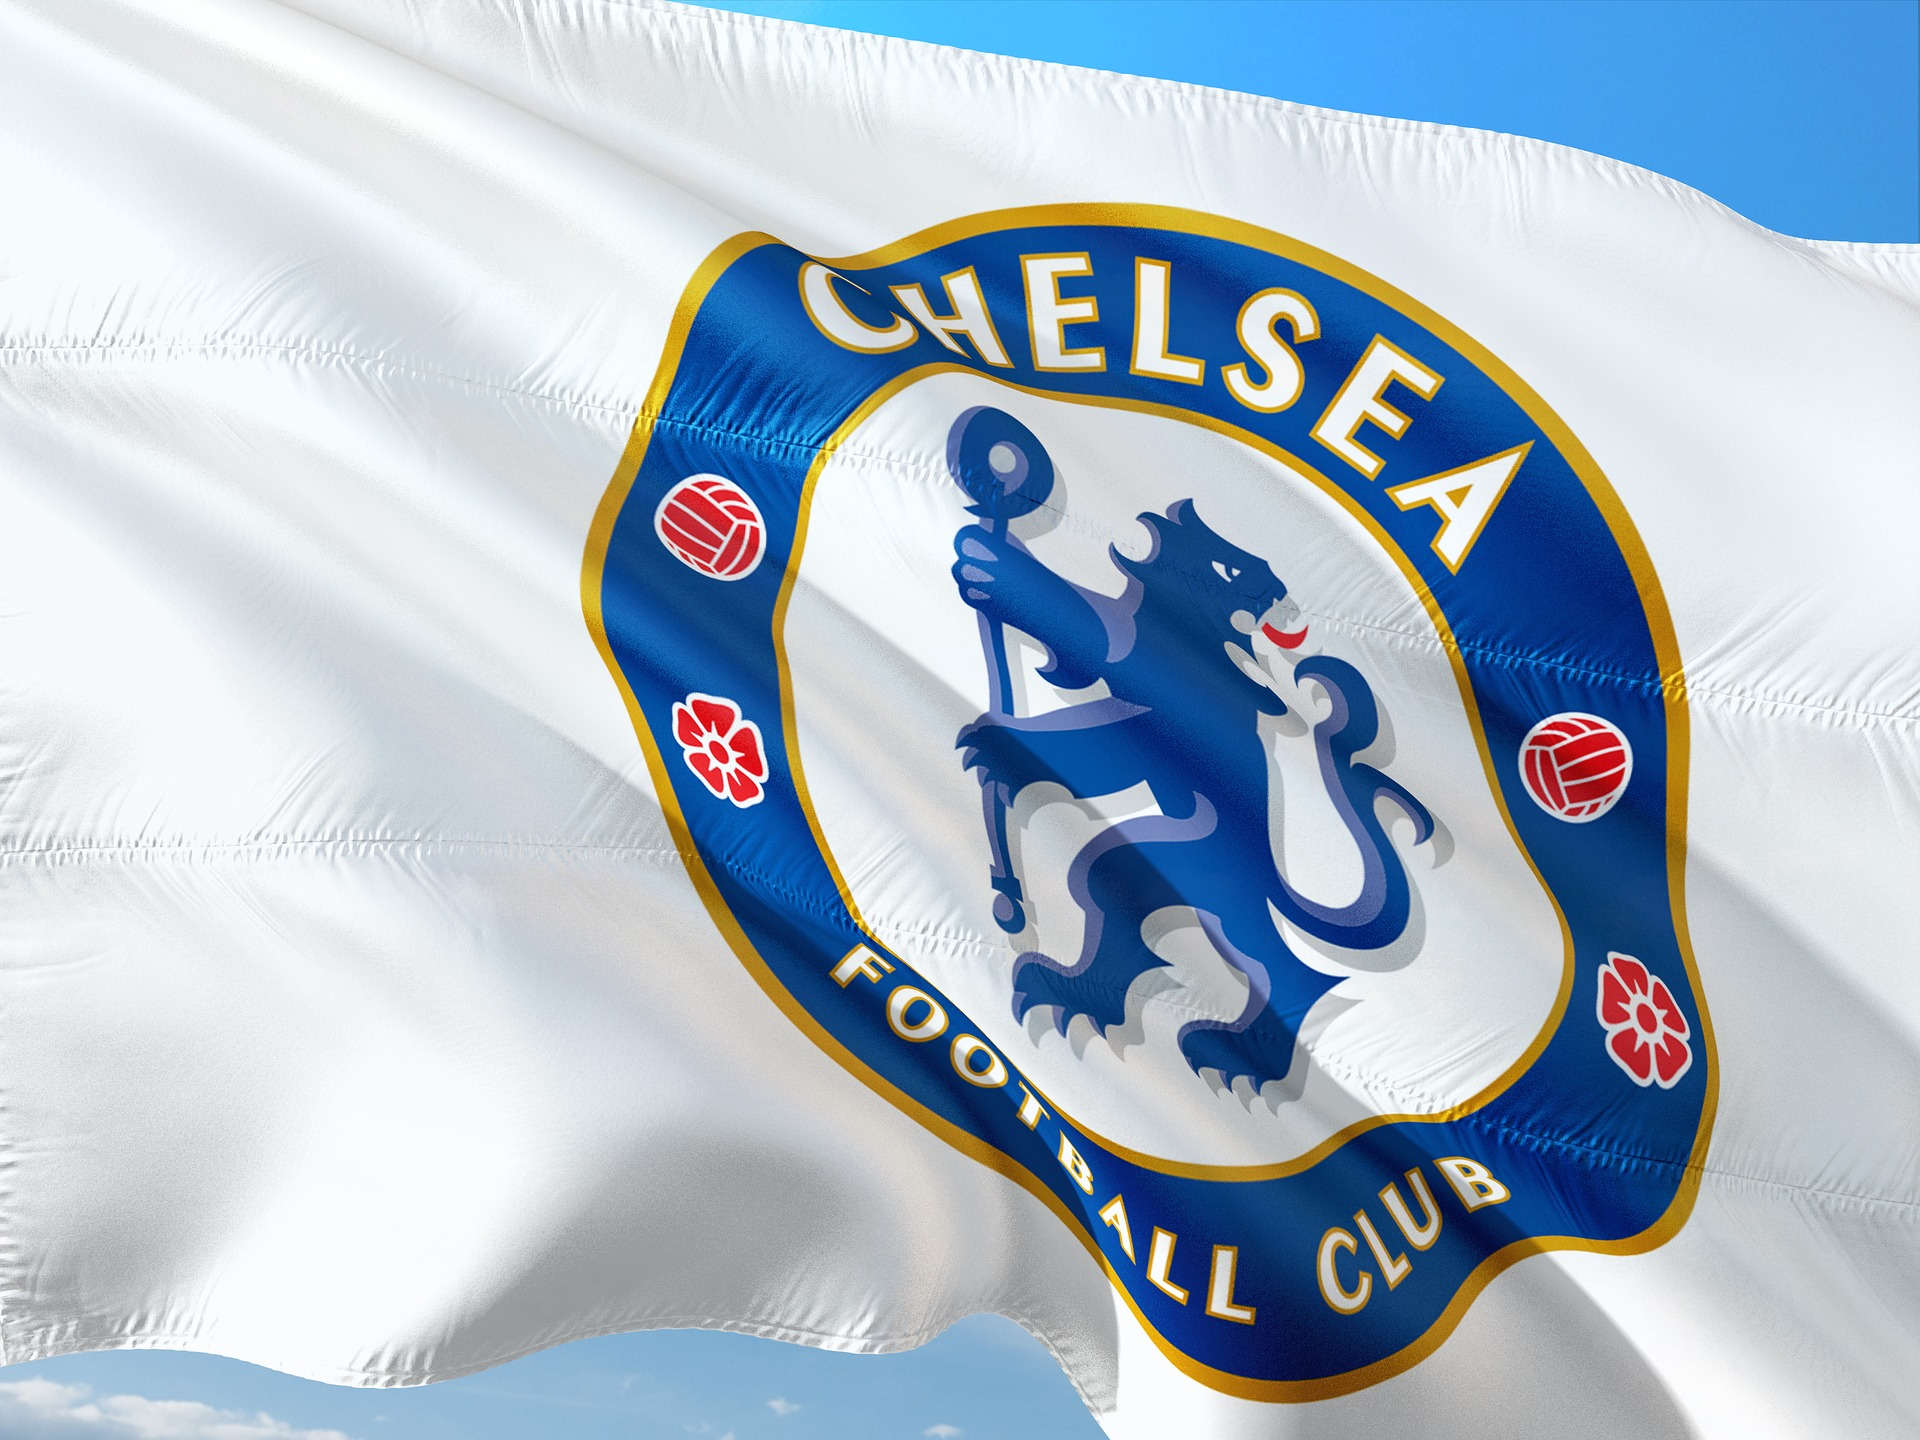 Chelsea team news and transfer